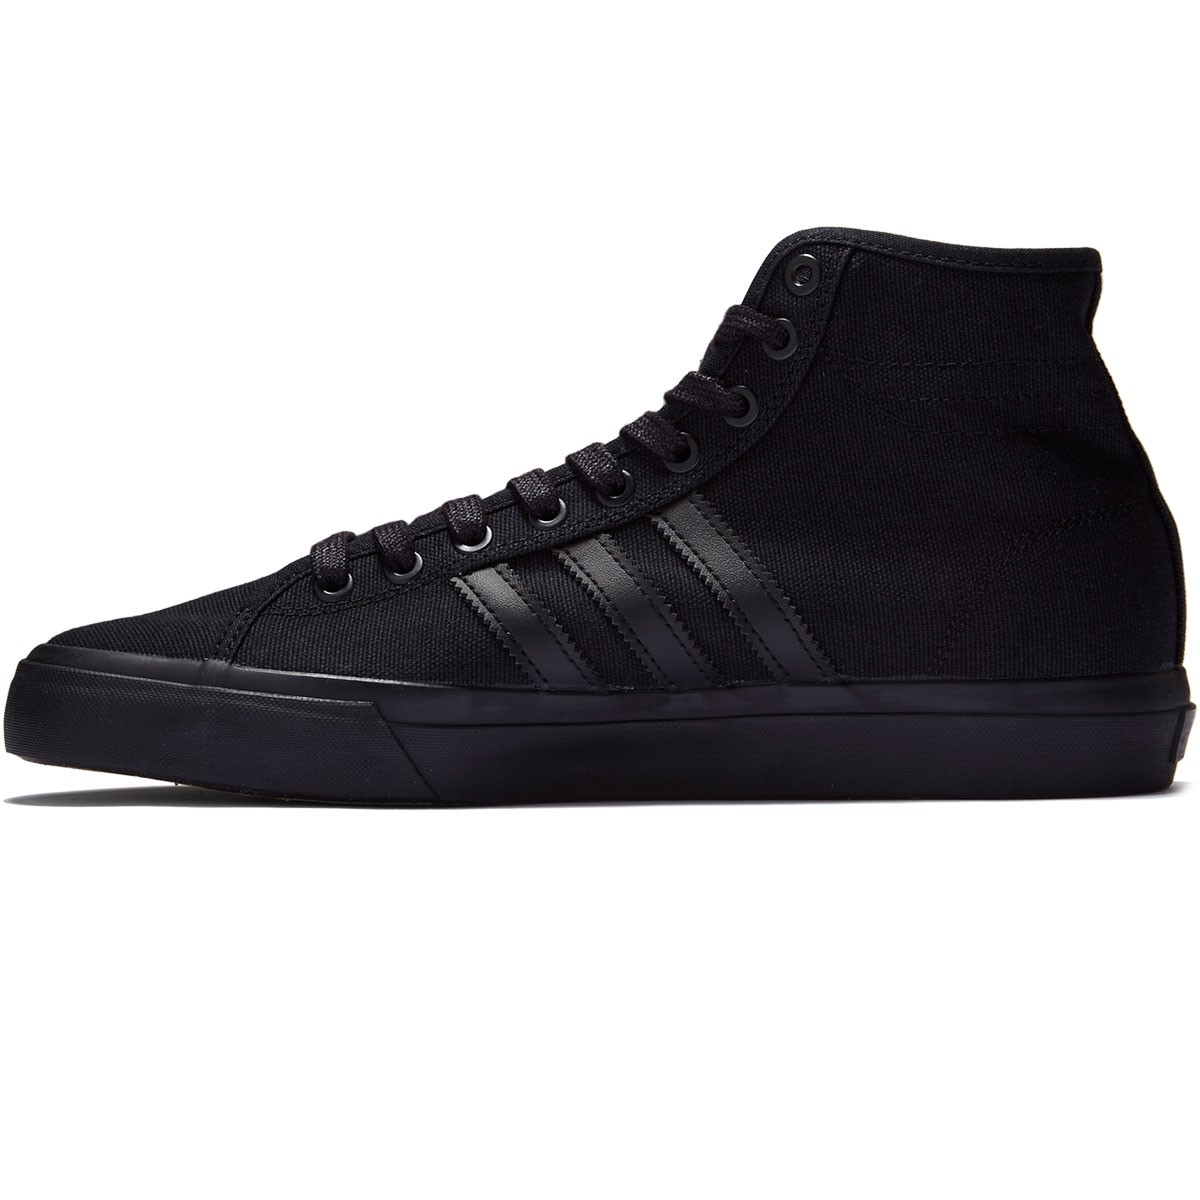 Adidas Matchcourt Shoes vita